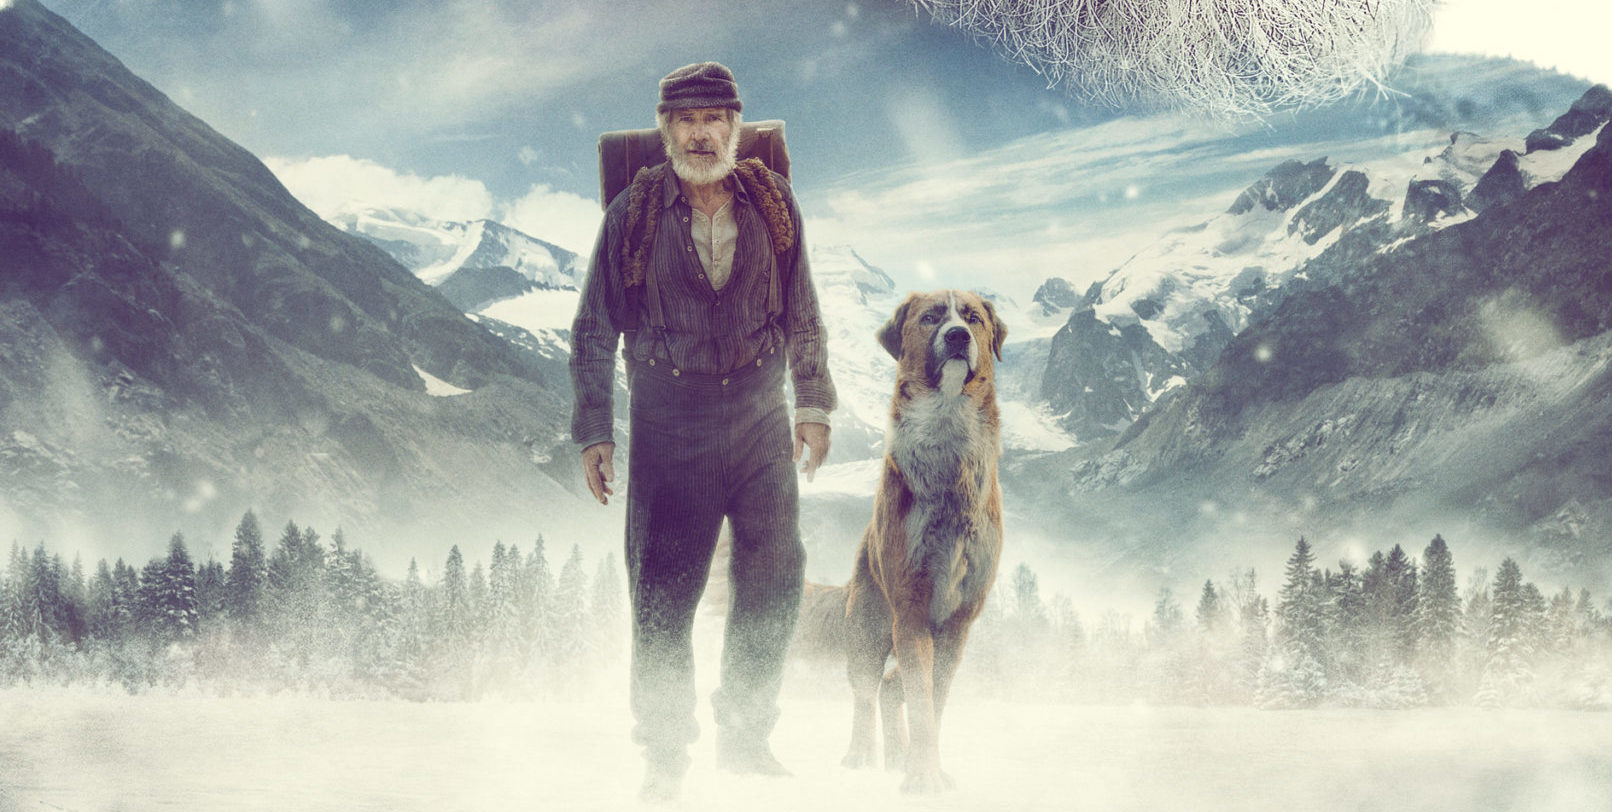 'CALL OF THE WILD' (REVIEW)